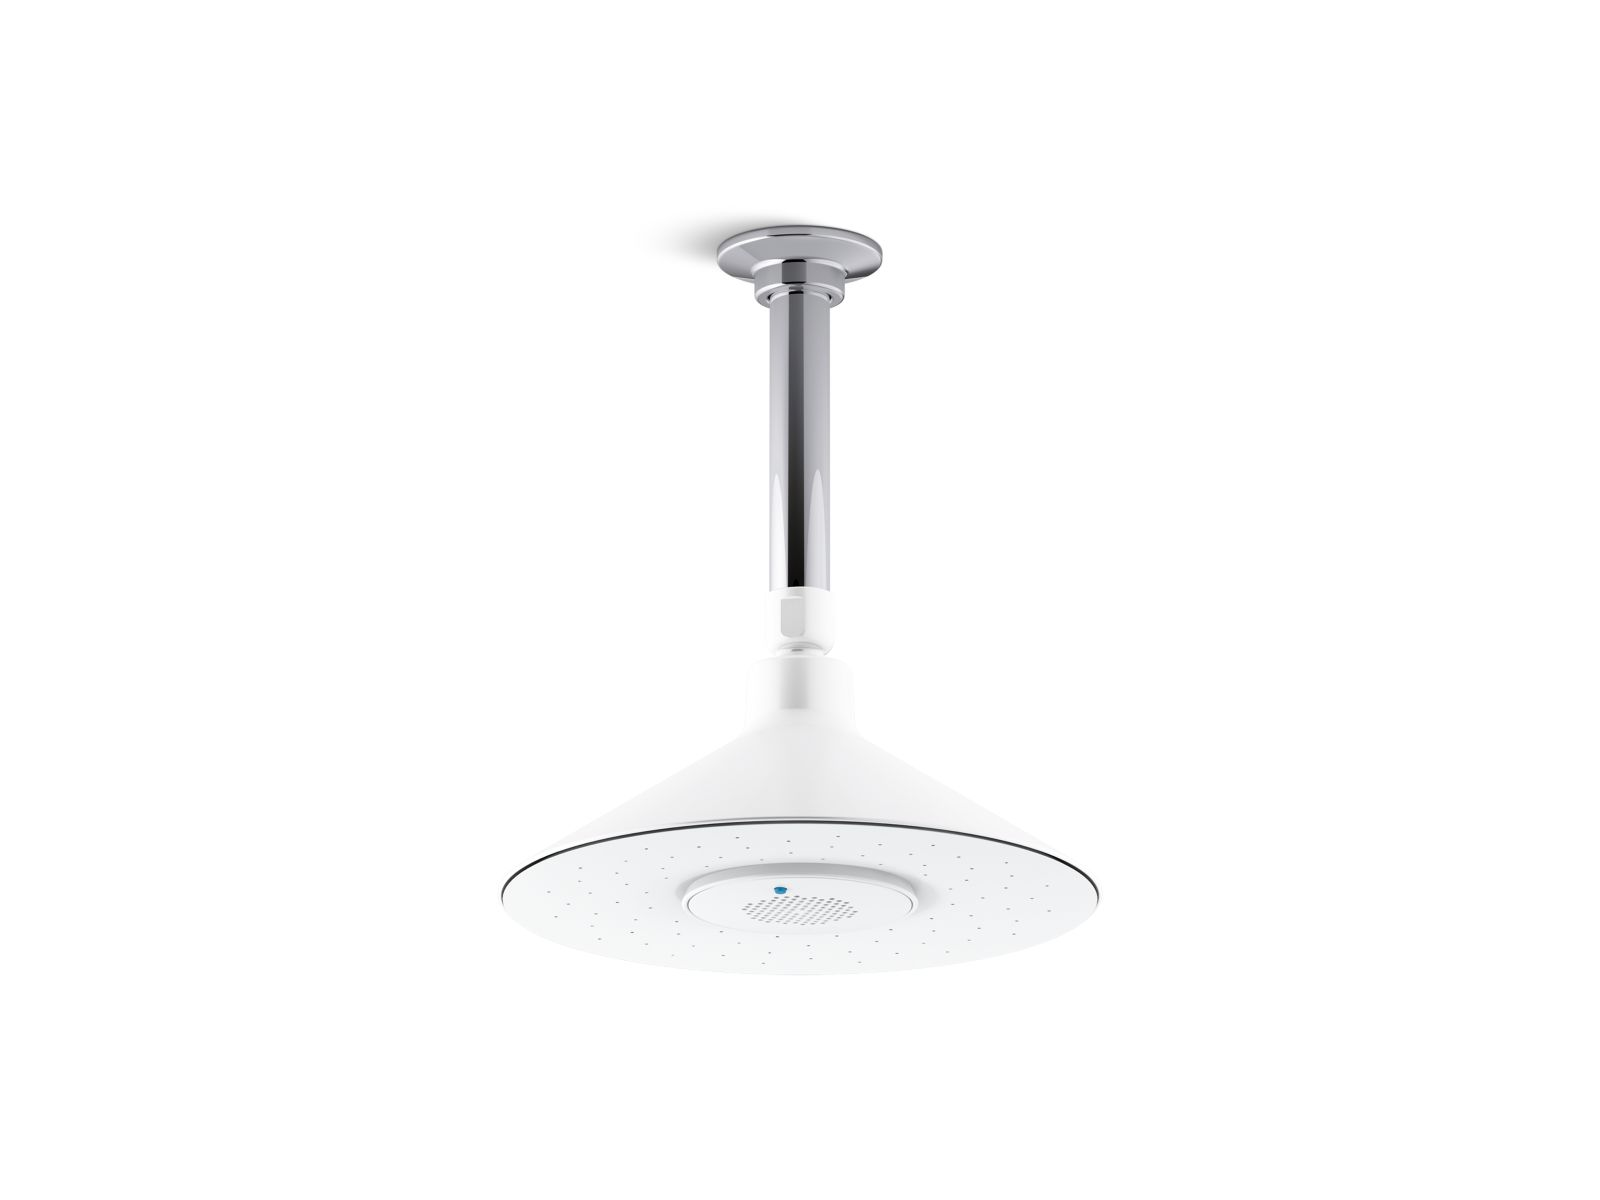 Kohler Moxie® K-99105-0 2.5 gpm rainhead with wireless speaker White